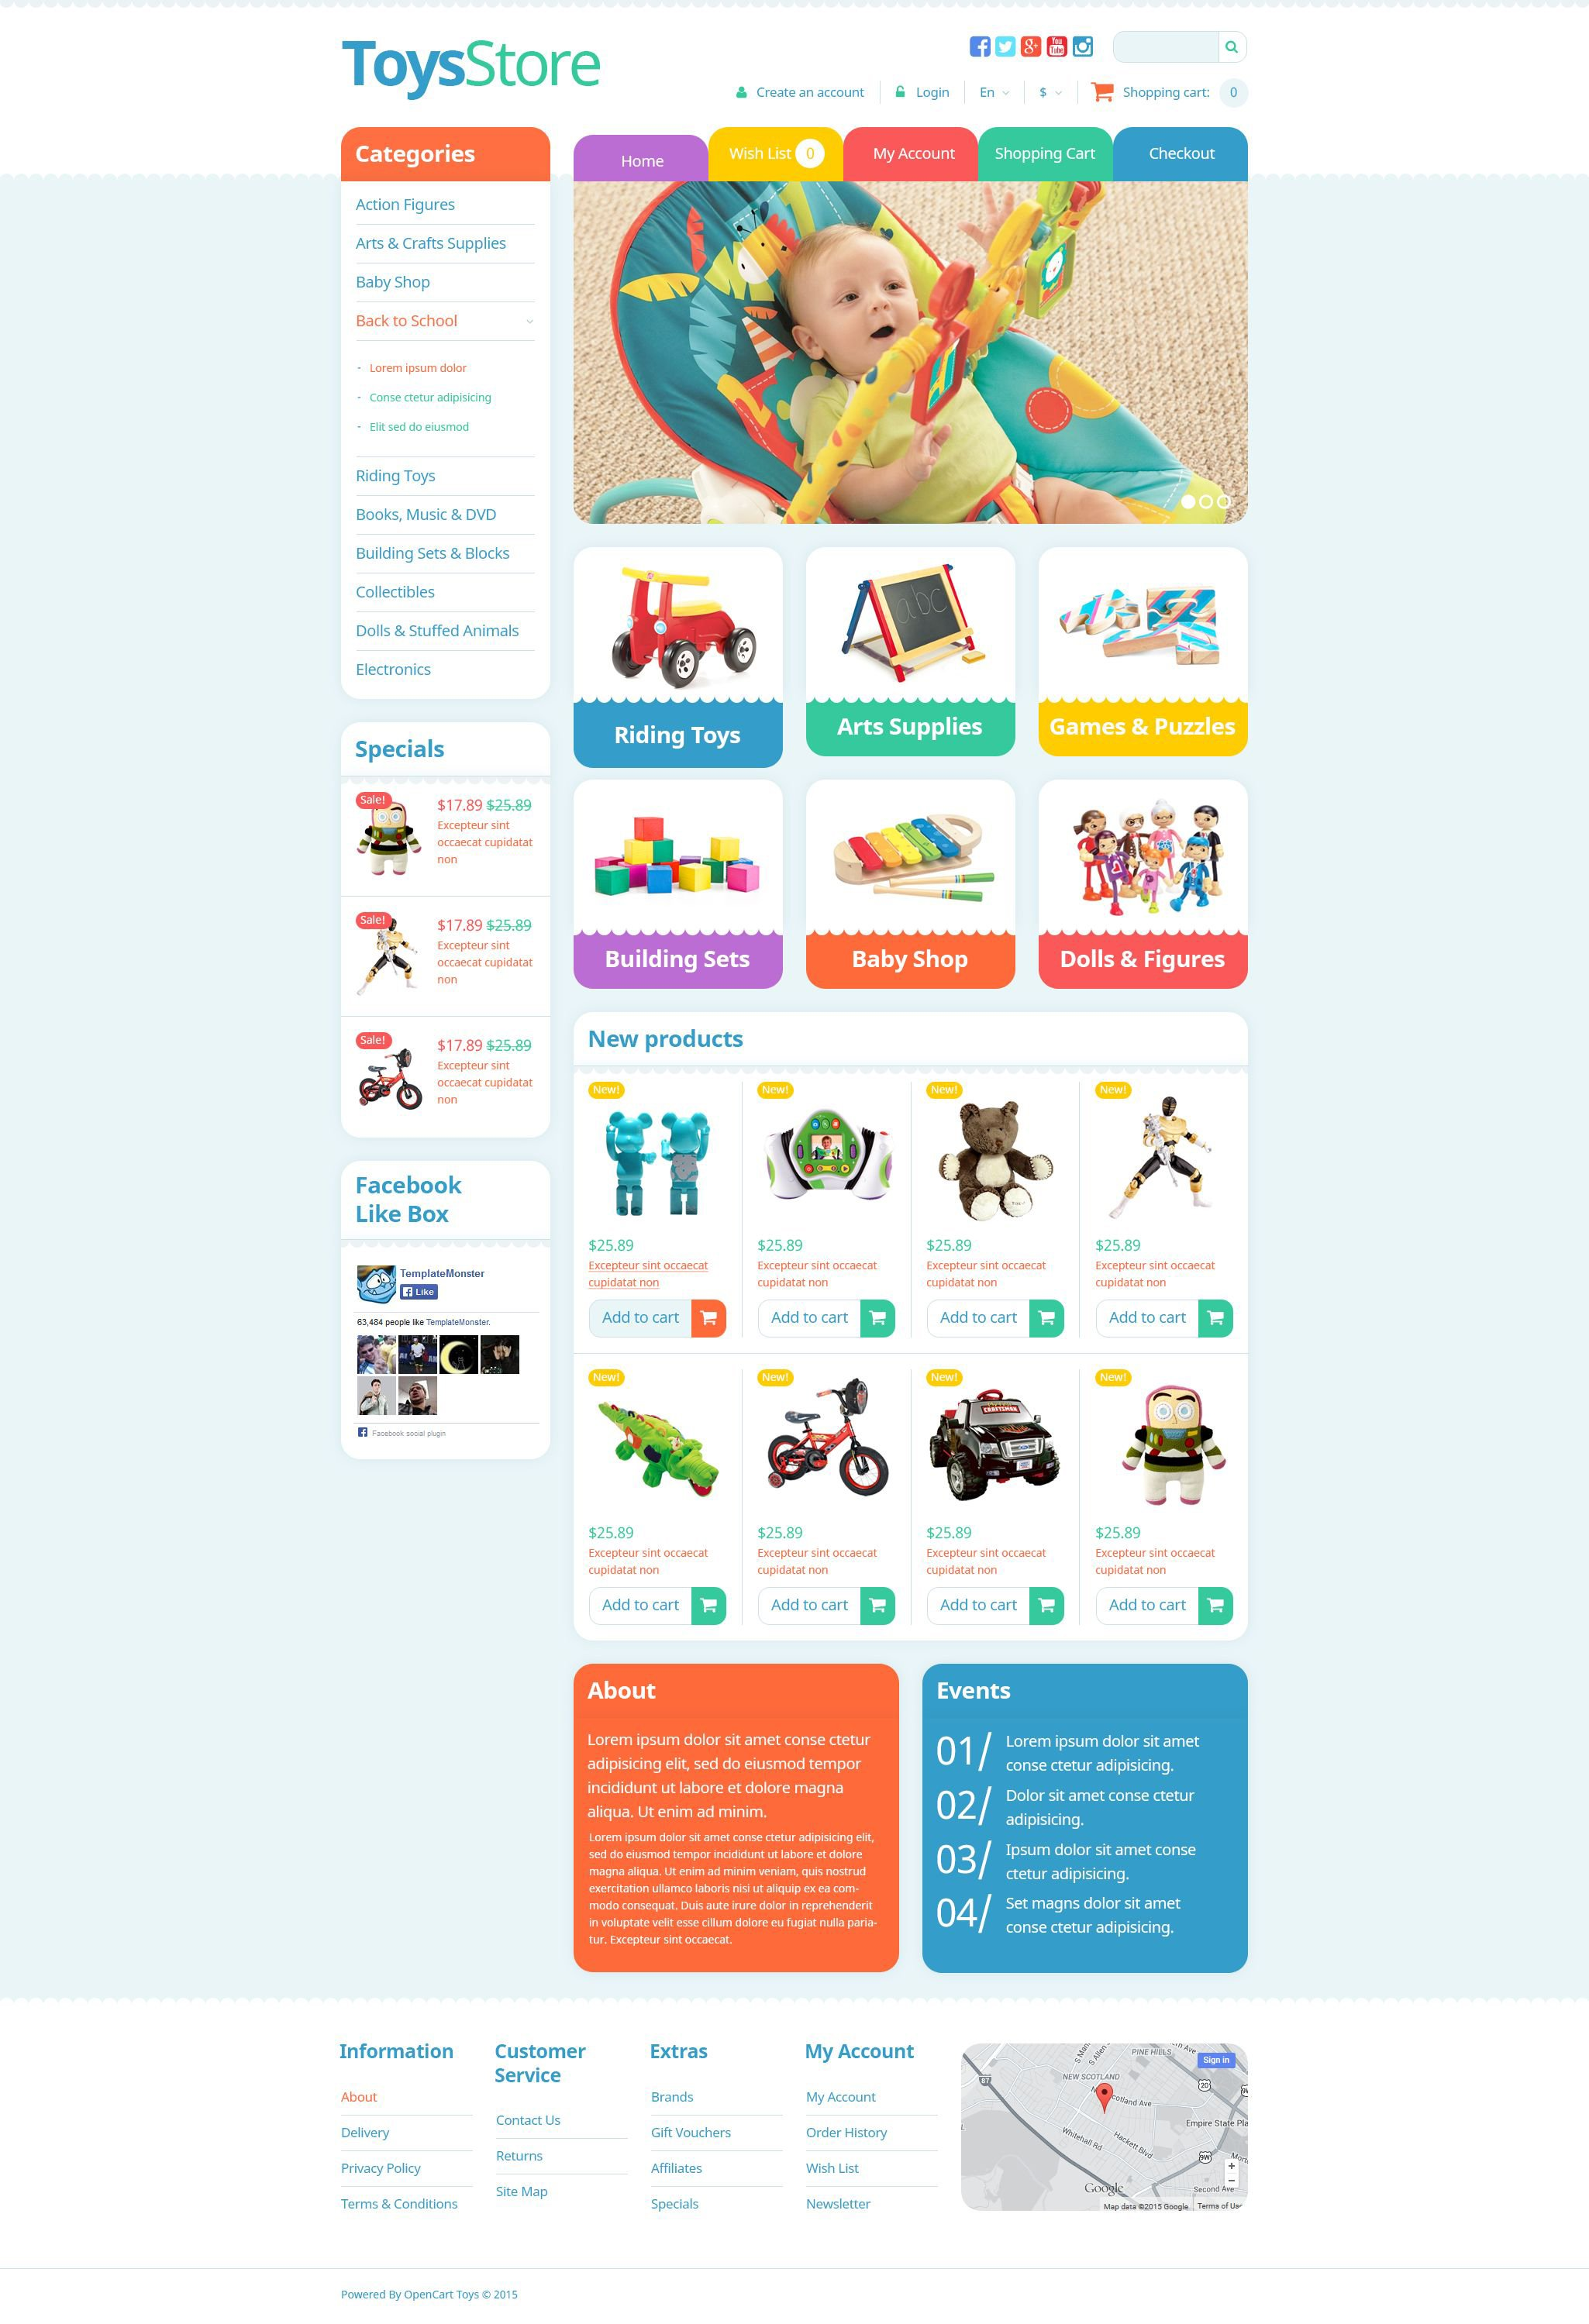 The Toy Toys Store OpenCart Design 53166, one of the best OpenCart templates of its kind (entertainment, most popular), also known as toy toys store OpenCart template, baby online shop OpenCart template, gift OpenCart template, toy OpenCart template, exclusive OpenCart template, children OpenCart template, animals OpenCart template, wildlife OpenCart template, party OpenCart template, favors OpenCart template, cool OpenCart template, vehicle OpenCart template, outdoor OpenCart template, developmental OpenCart template, car OpenCart template, doll OpenCart template, game OpenCart template, dog OpenCart template, teddy OpenCart template, bear OpenCart template, roadster OpenCart template, frog OpenCart template, mover OpenCart template, table OpenCart template, ball OpenCart template, puzzle OpenCart template, bus OpenCart template, plush OpenCart template, battleship OpenCart template, air OpenCart template, chair OpenCart template, presents OpenCart template, snowmen OpenCart template, delivery and related with toy toys store, baby online shop, gift, toy, exclusive, children, animals, wildlife, party, favors, cool, vehicle, outdoor, developmental, car, doll, game, dog, teddy, bear, roadster, frog, mover, table, ball, puzzle, bus, plush, battleship, air, chair, presents, snowmen, delivery, etc.